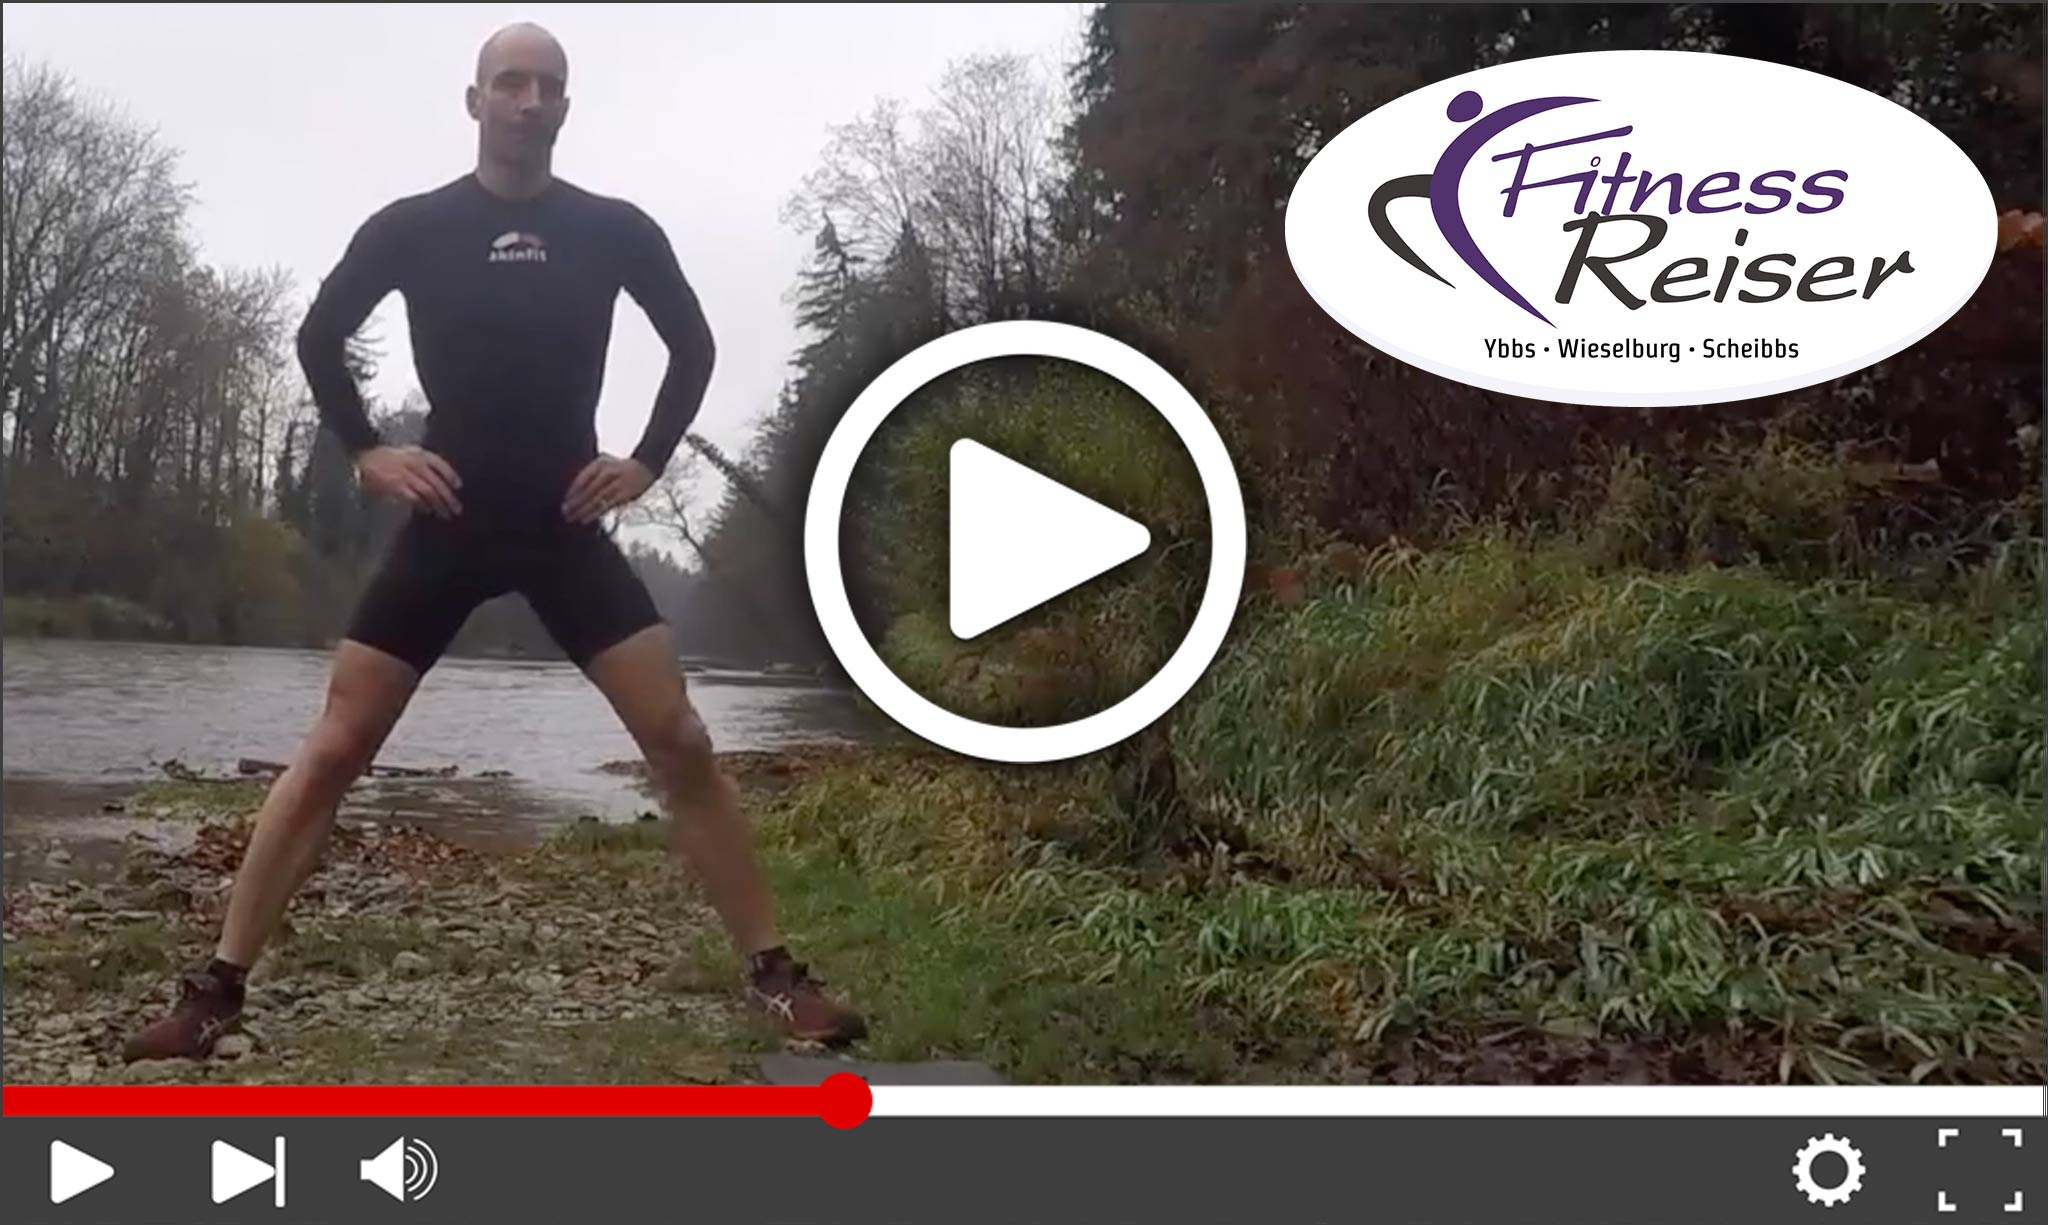 Video: Outdoor-Zirkeltraining mit Thomas - Fitness Reiser